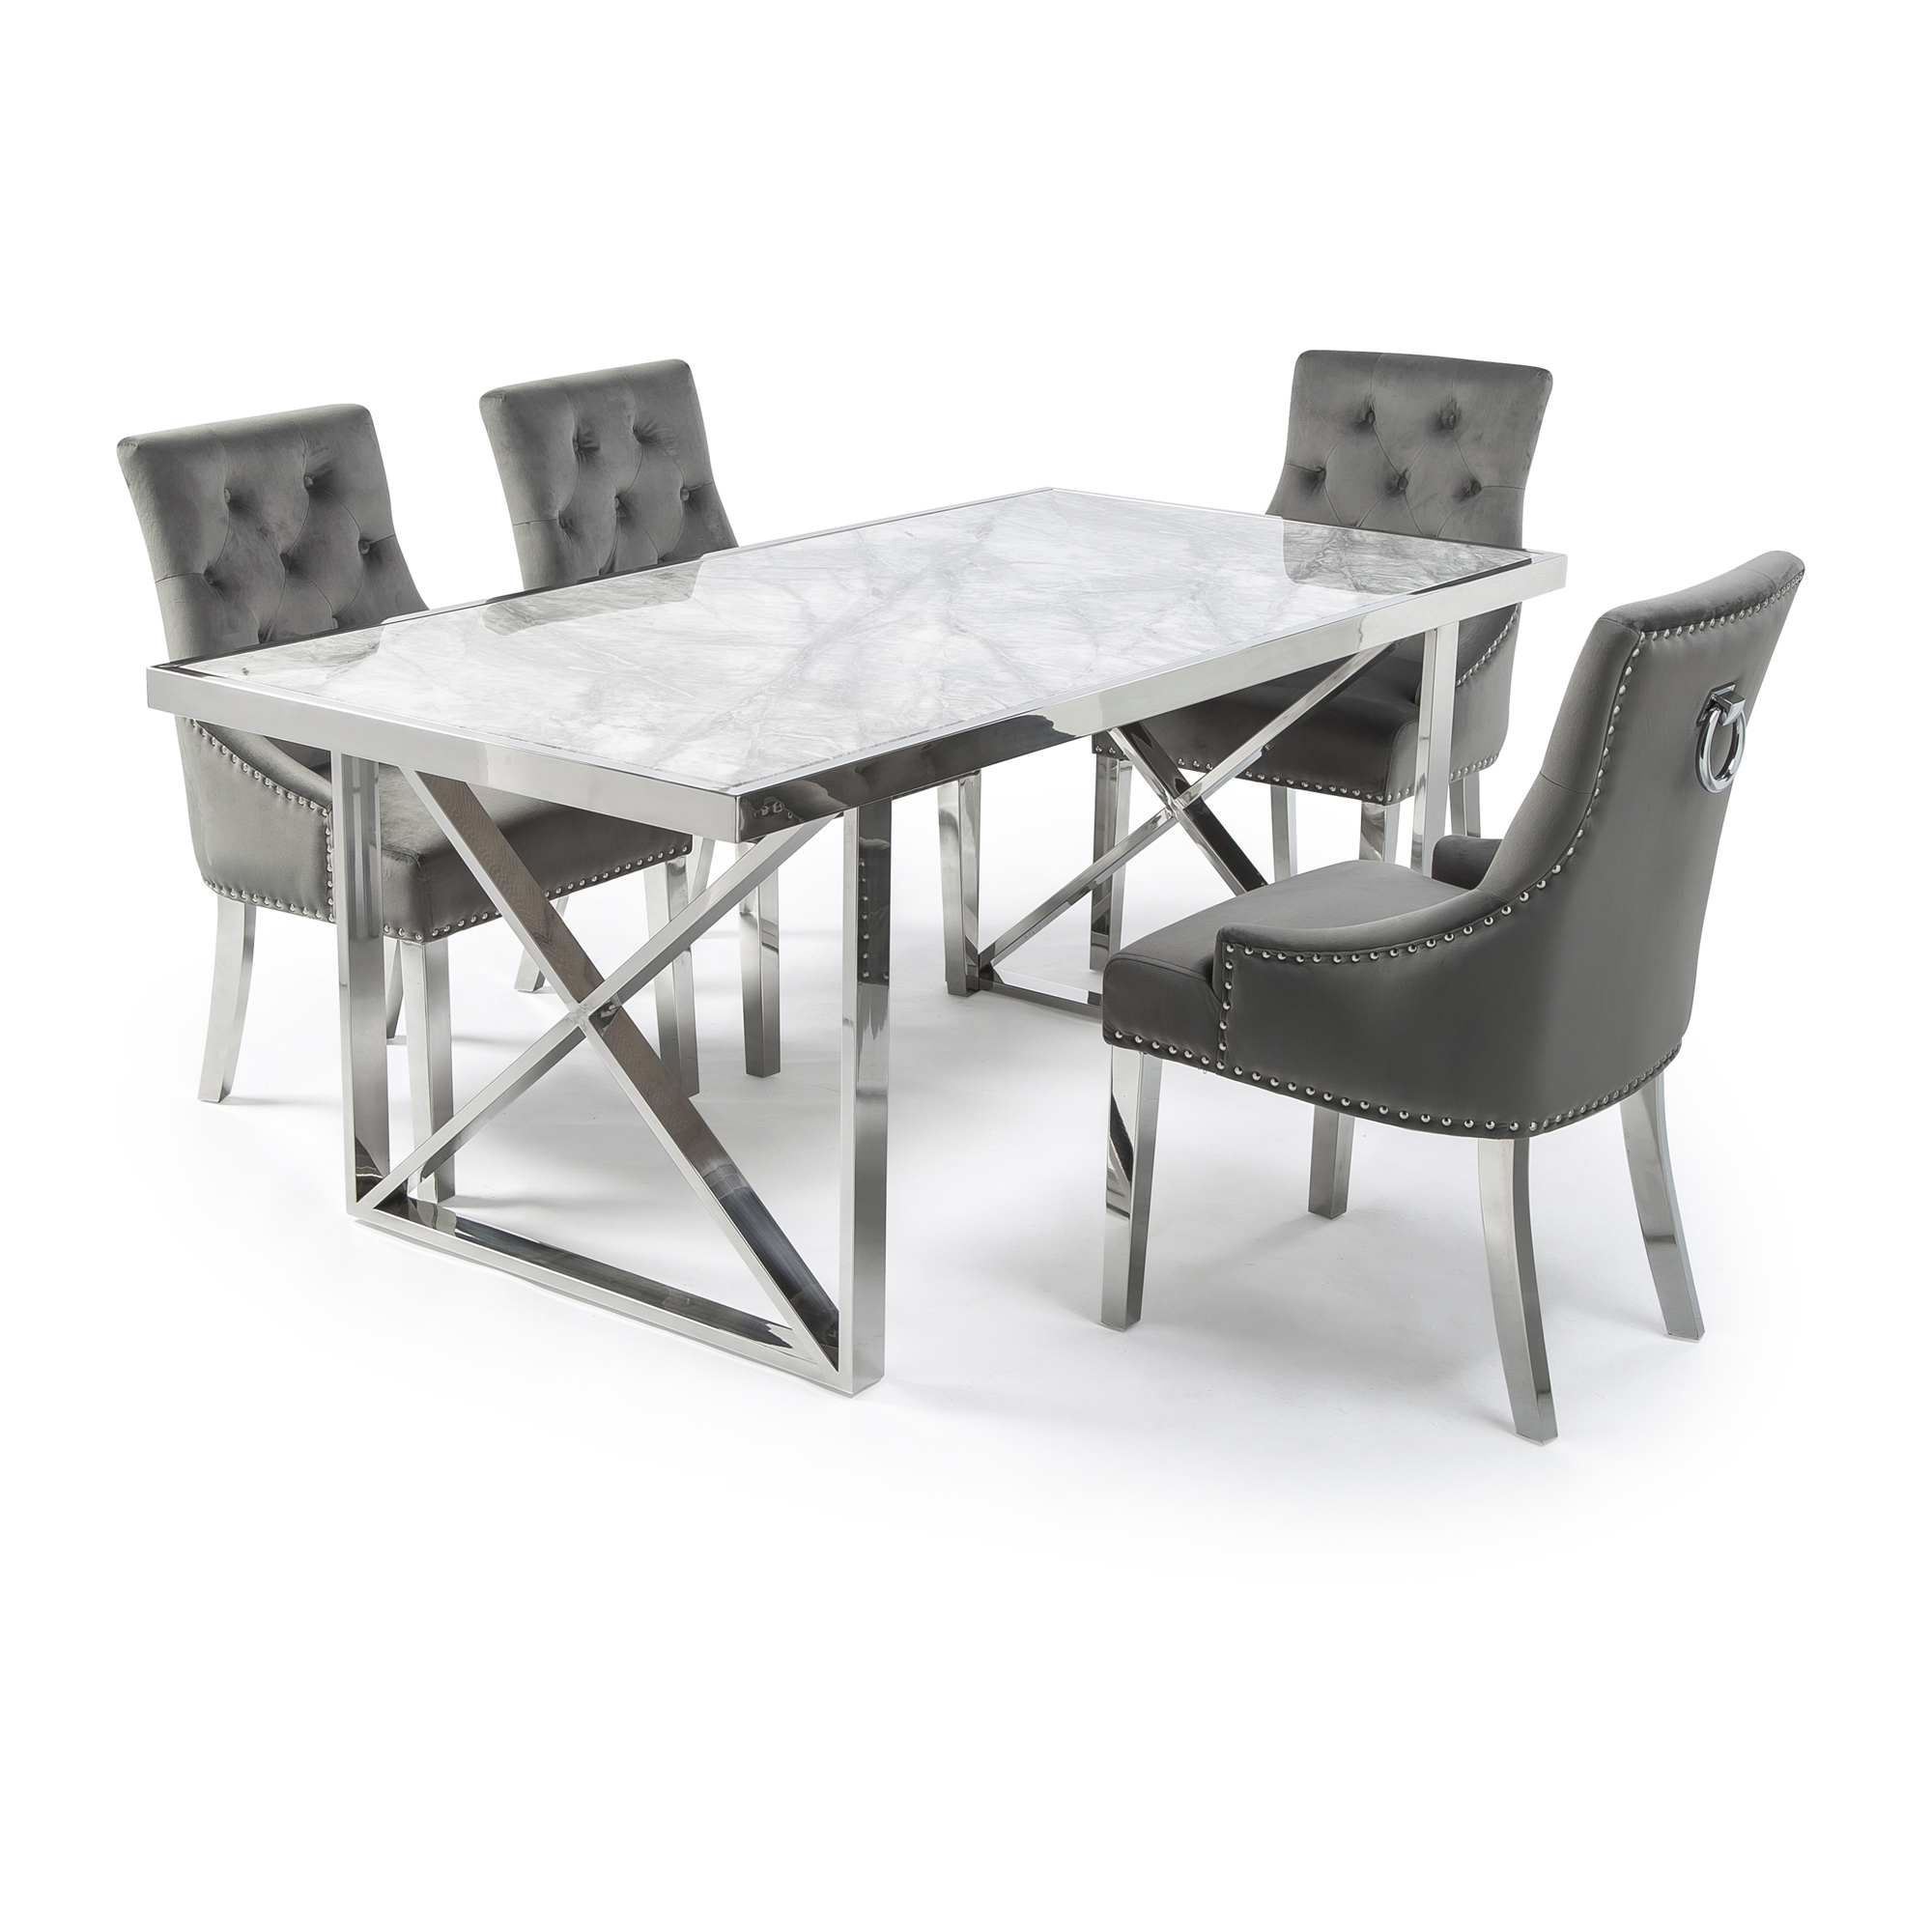 1.8M Tuscany Grey Marble Dining Table Set with 4 Grey Brushed Velvet Chelsea Dining Chairs